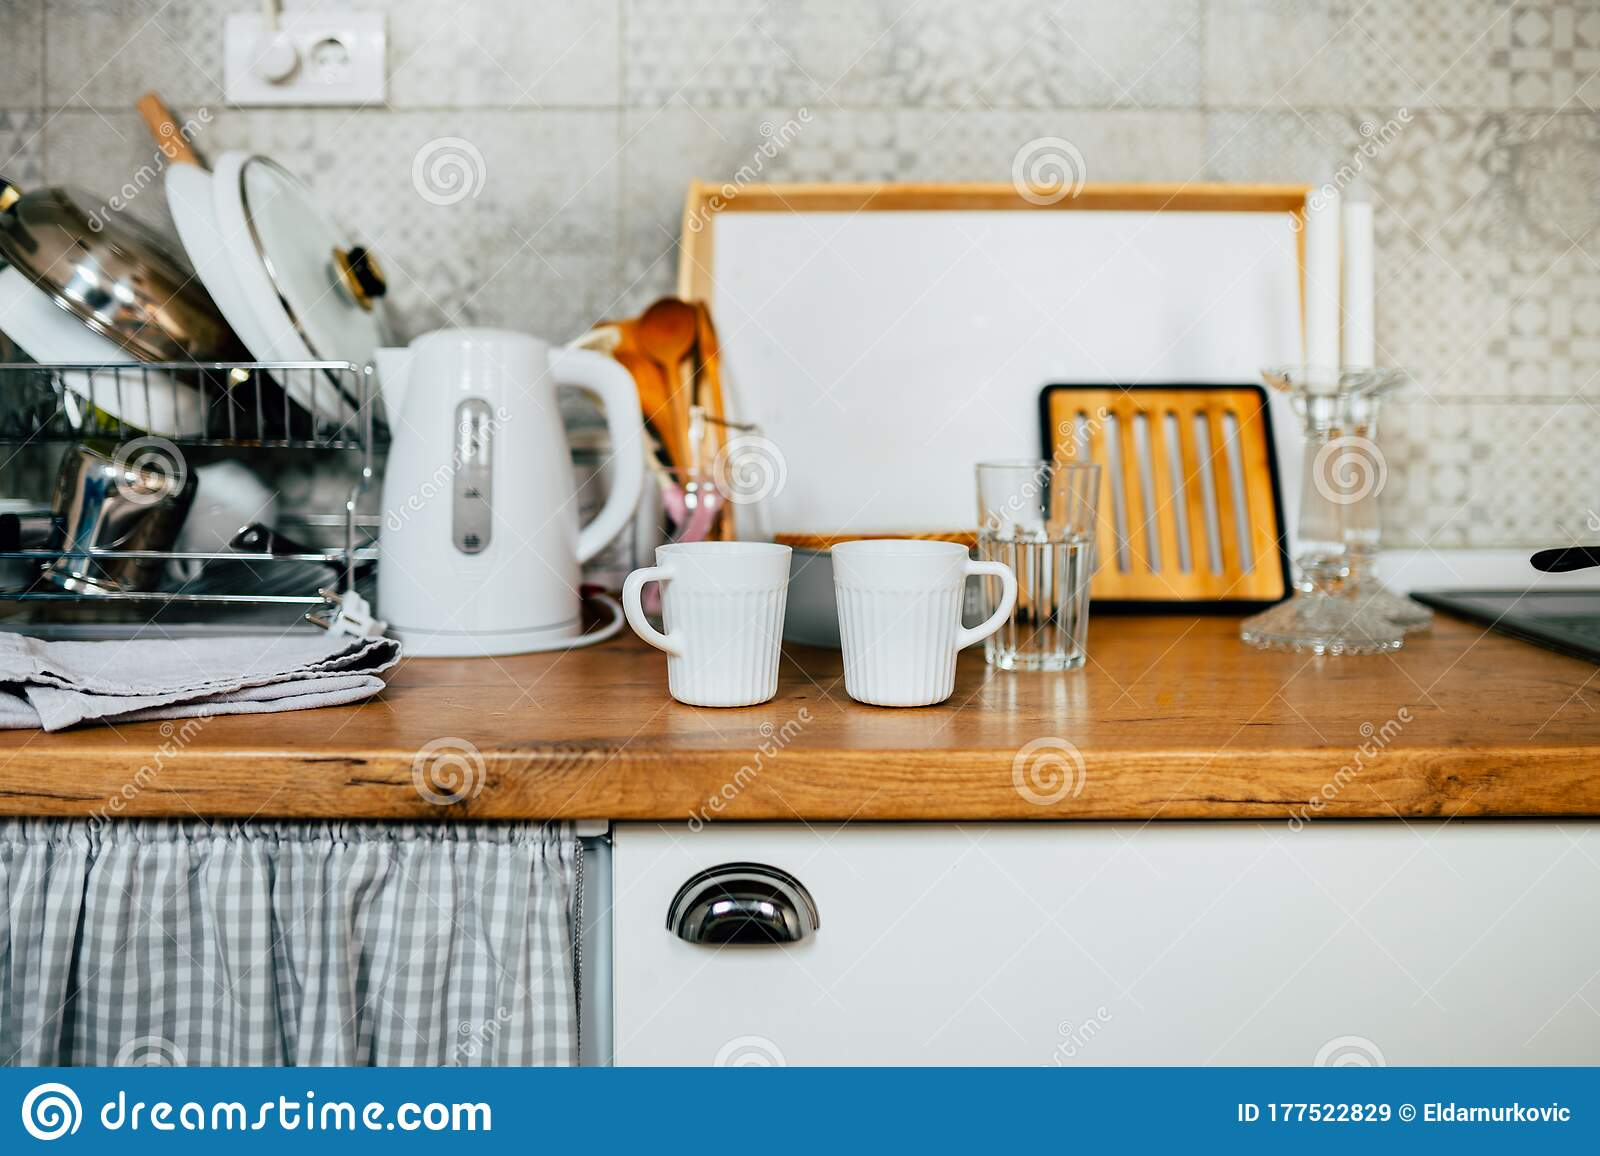 Picture of: Detail Of Small Kitchen White Cupboards With Wooden Butchers Block Counter Top Two Cups In The Kitchen With Glassware And Dishes Stock Image Image Of Indoor Kitchenette 177522829